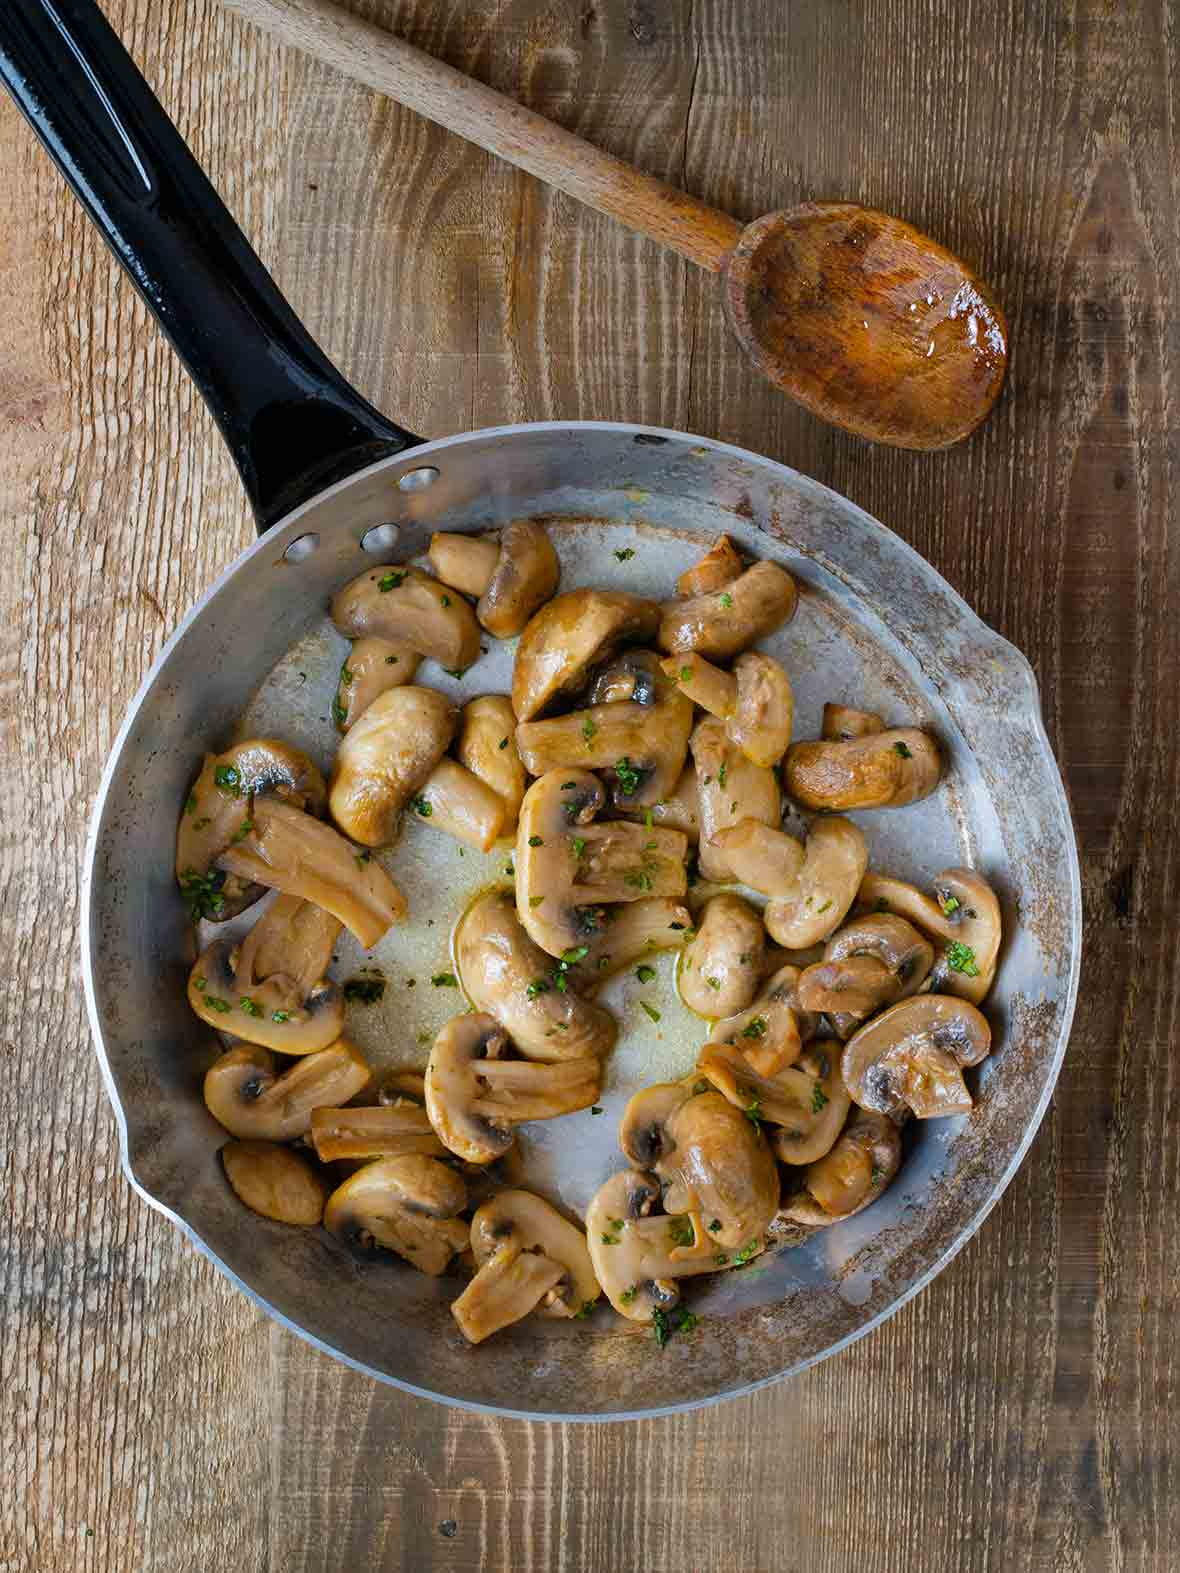 A skillet filled with mushrooms with garlic and sherry, sprinkled with parsley, and a wooden spoon resting beside it.